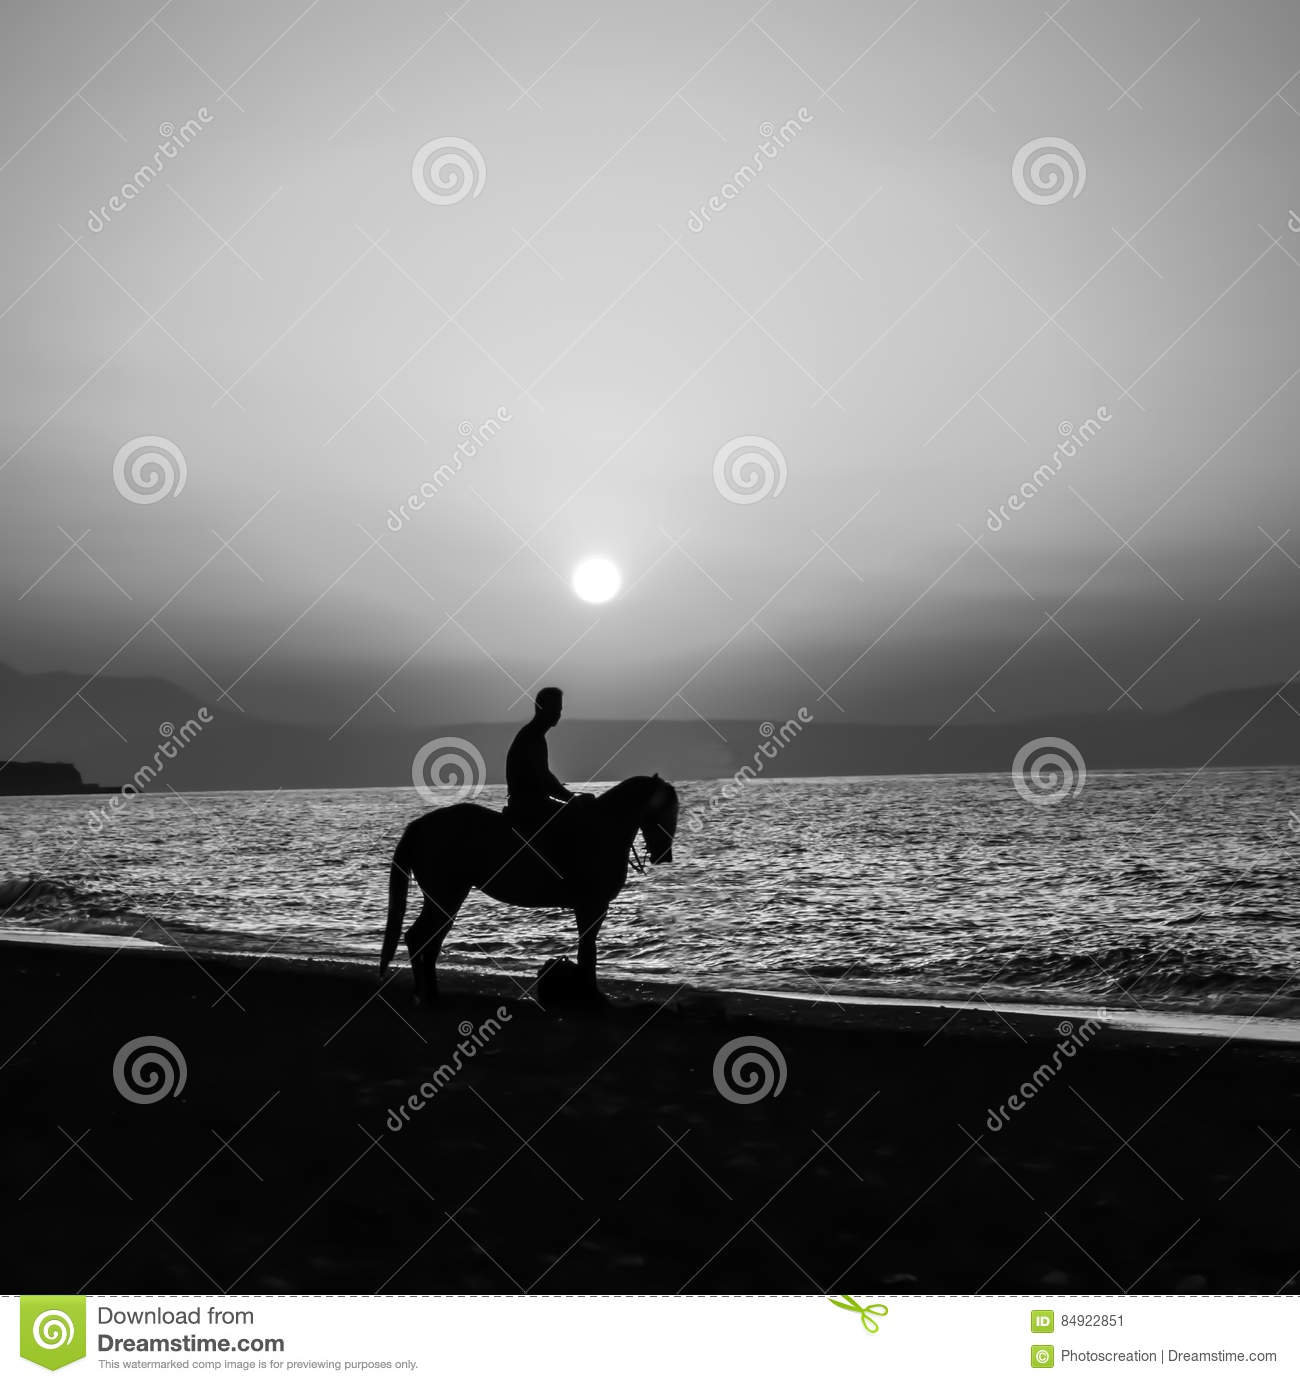 man on the horse with sunset background